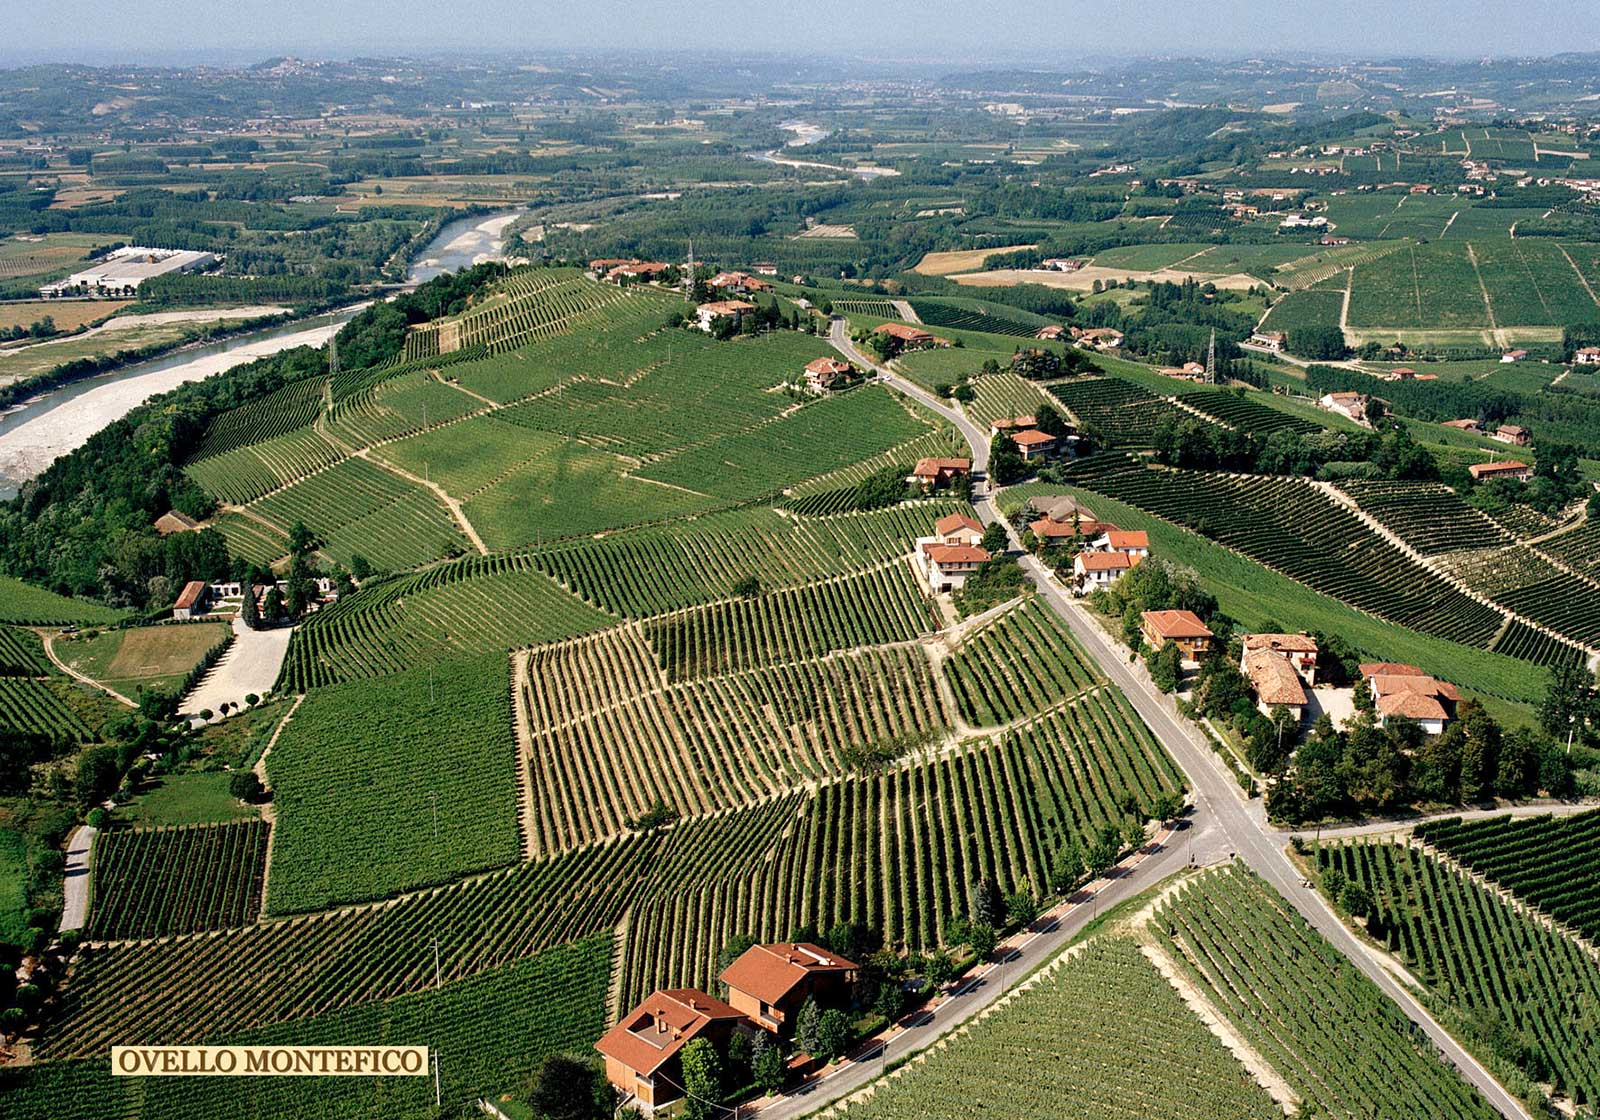 The Montefico (bottom center) and Ovello (stretching into the distance) vineyards. Ovello's unique terroir derives a fair amount of character from its position above the Tanaro River. ©Produttori del Barbaresco